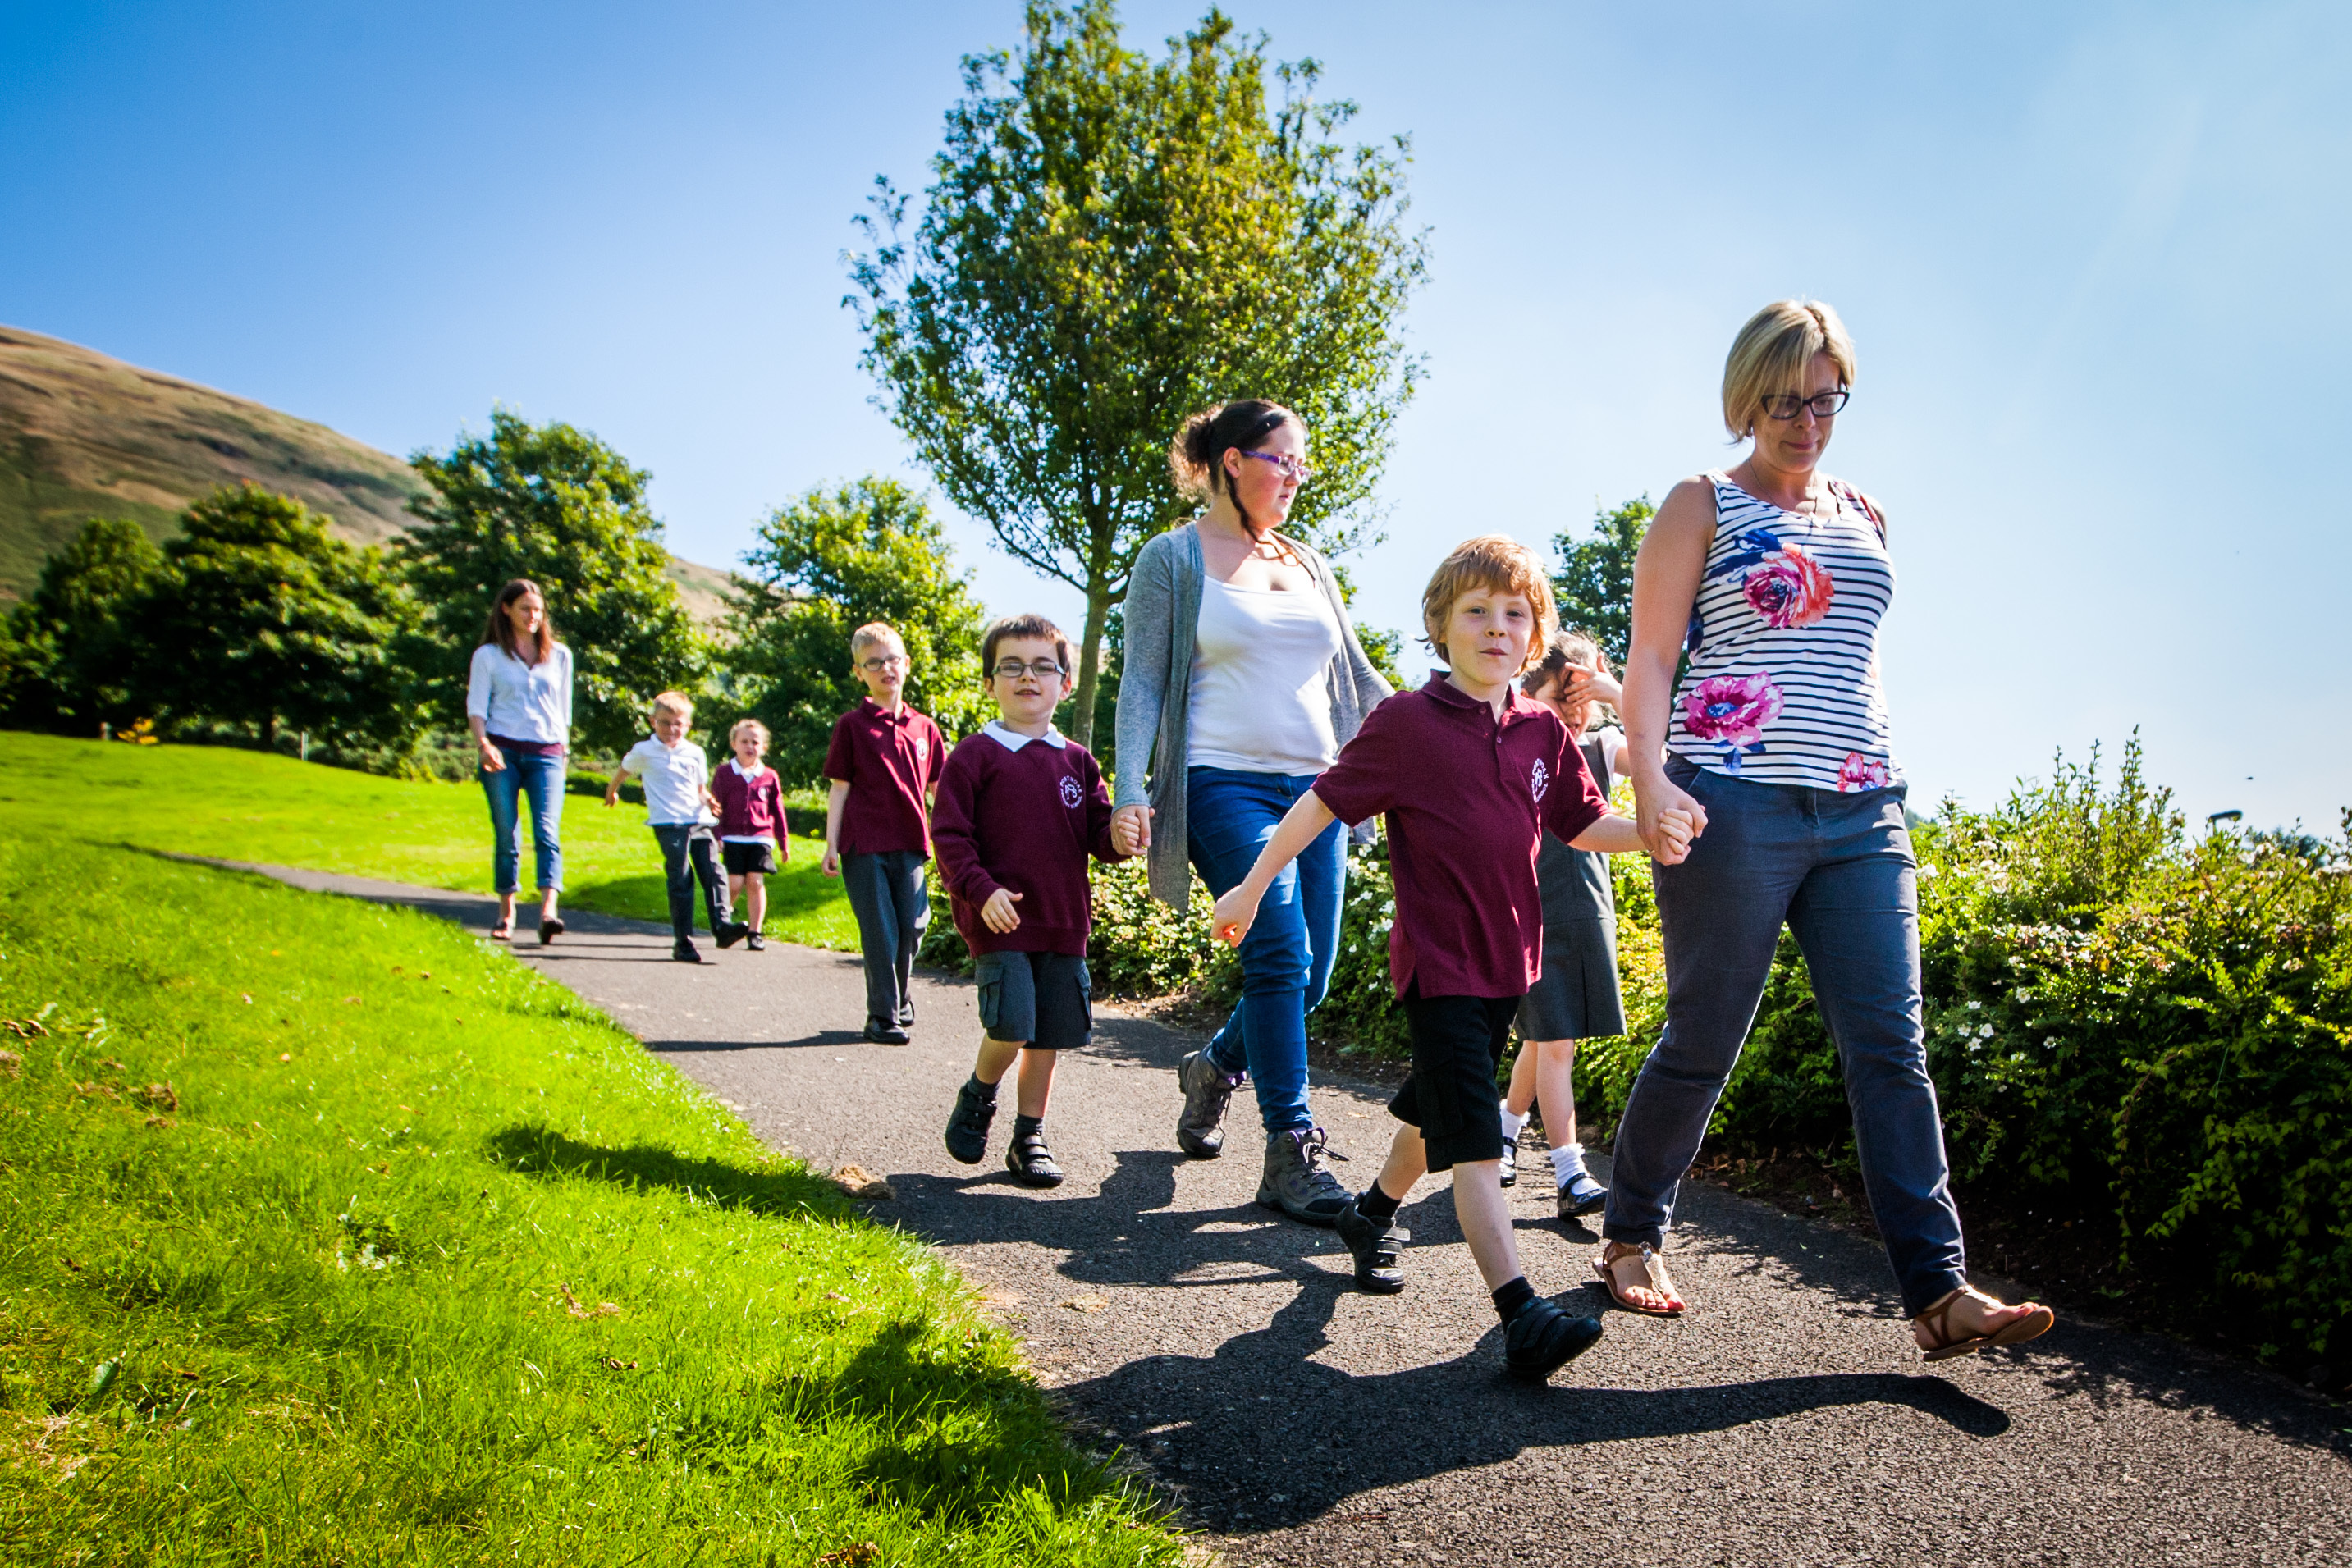 Parents are angry at the axing of a private bus used for transport of children to and from school.